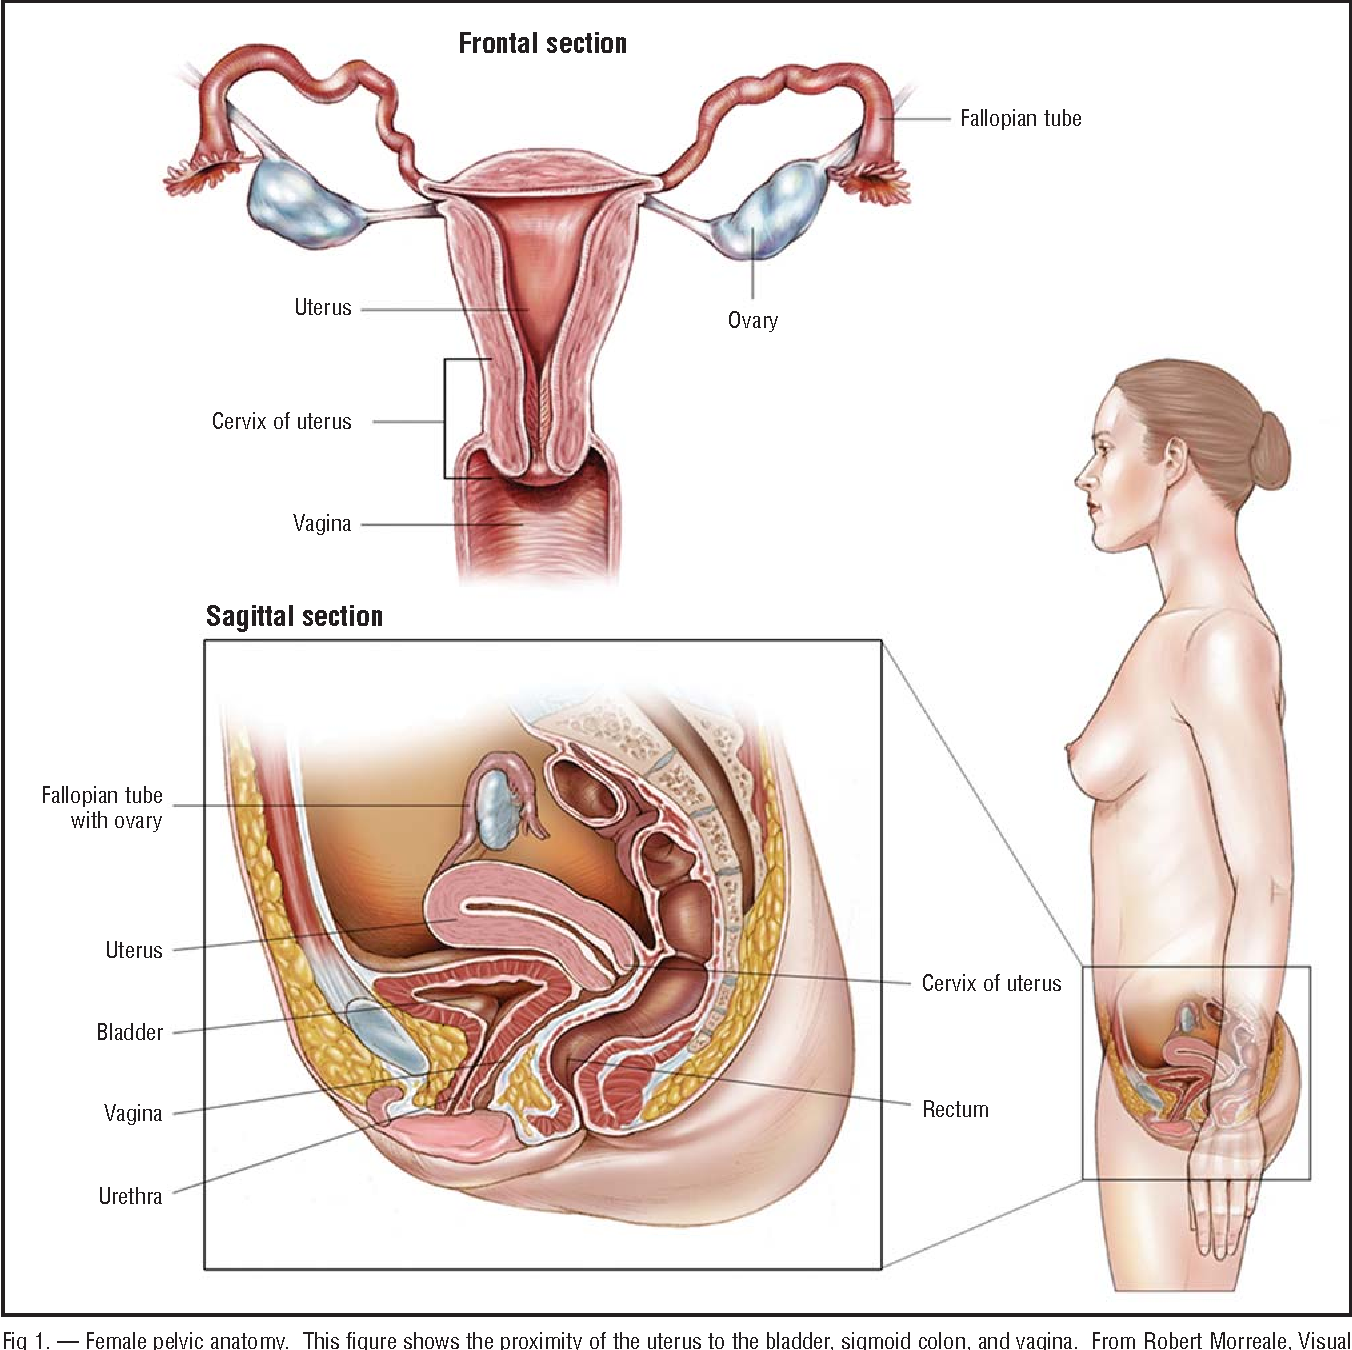 Table 1 From Uterus Cervix Of Uterus Vagina Ovary Fallopian Tube